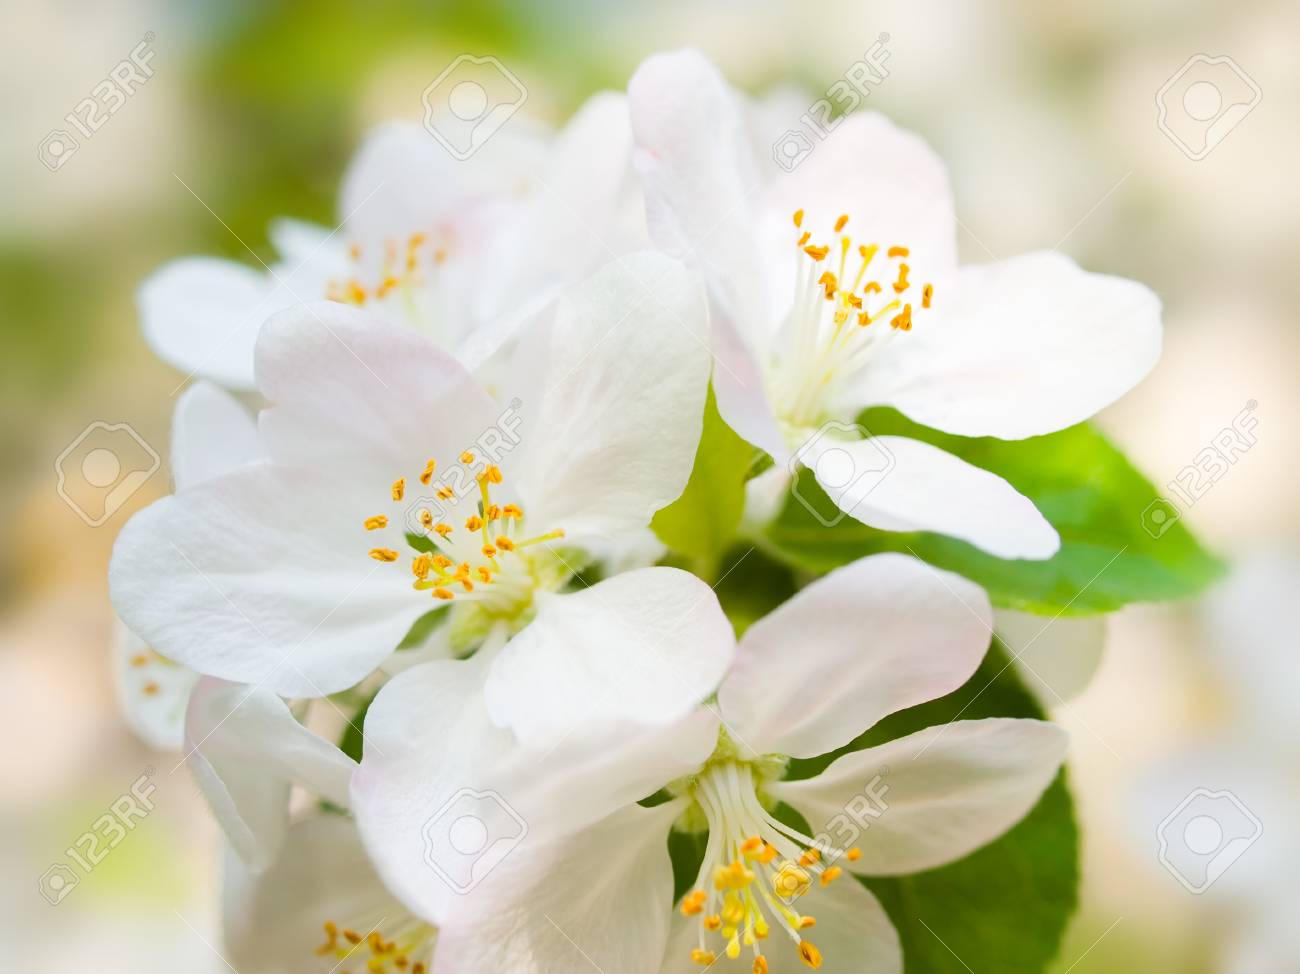 Blossoming apple closeup background. Stock Photo - 9525676